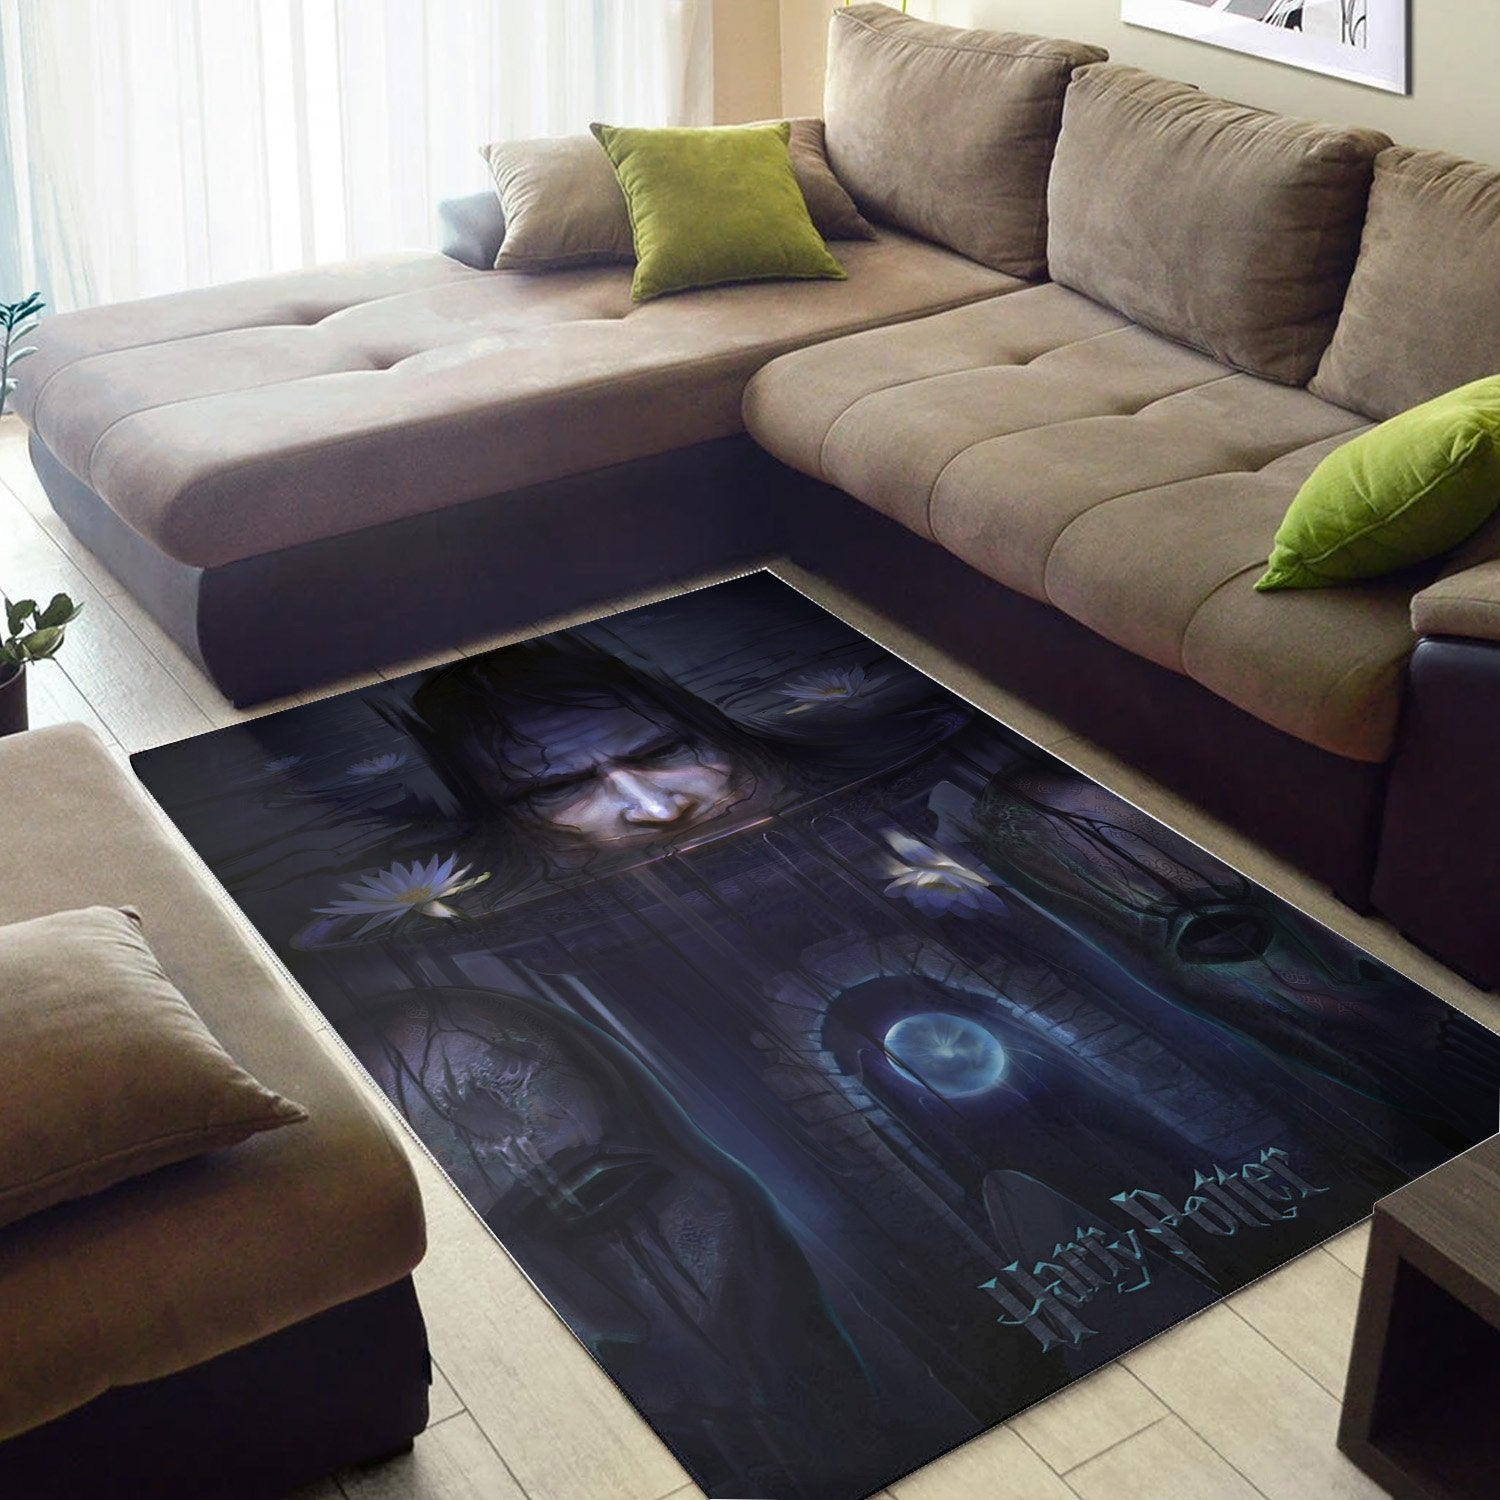 Scary Potter And The Order Of The Phoenix Rug, Area Rug, Floor Decor